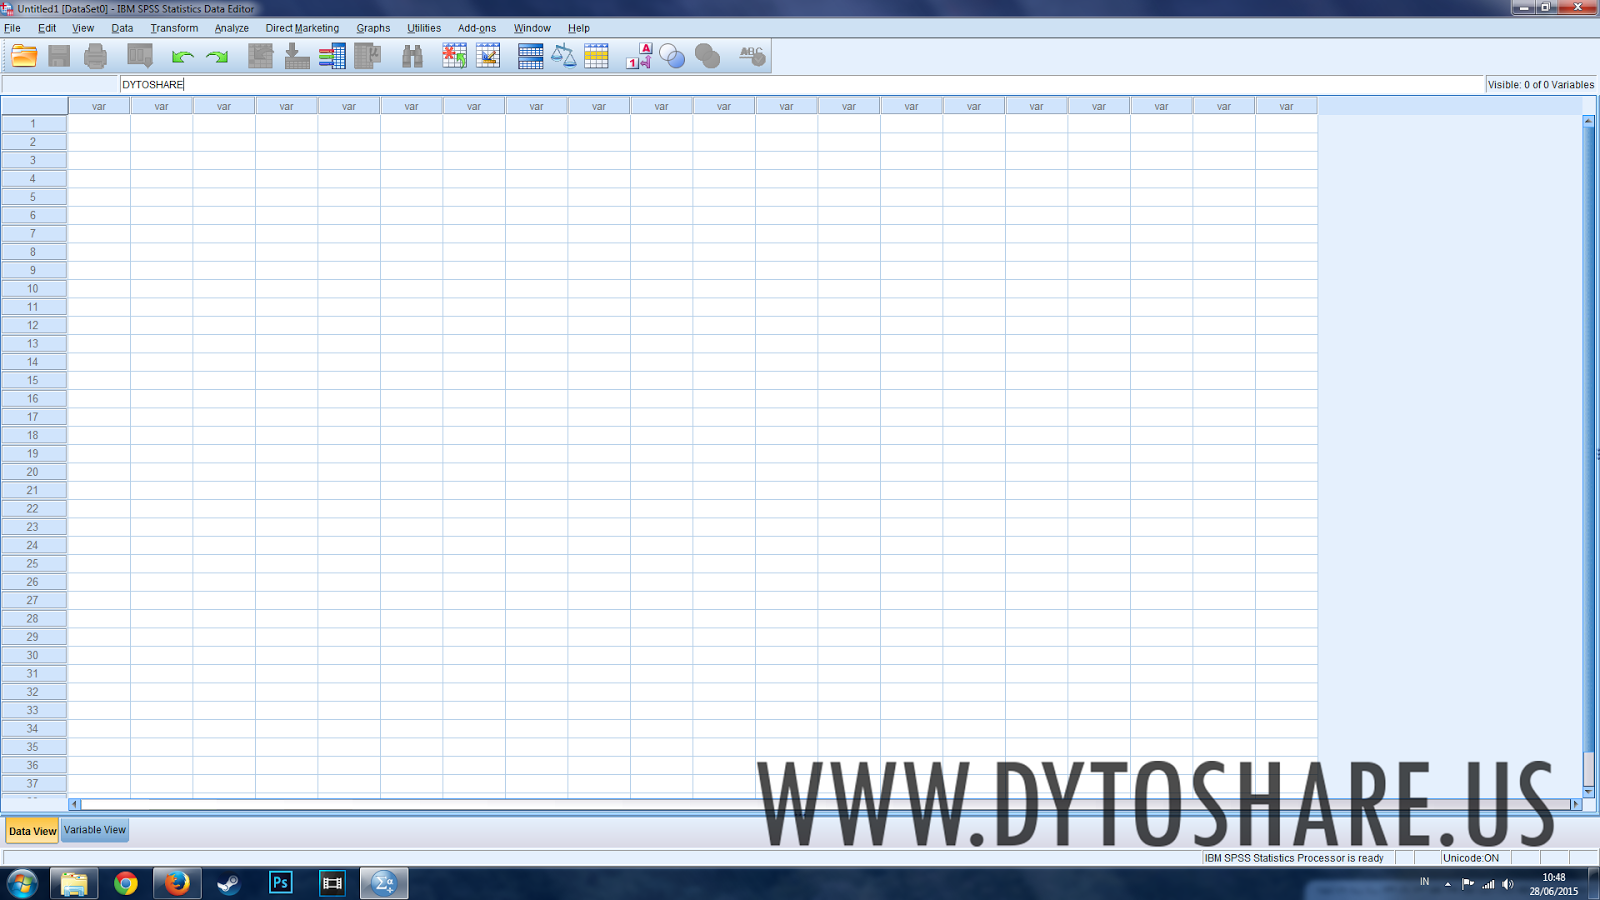 Free download spss statistics software version 19. 0 and 20. 0. Mp4.